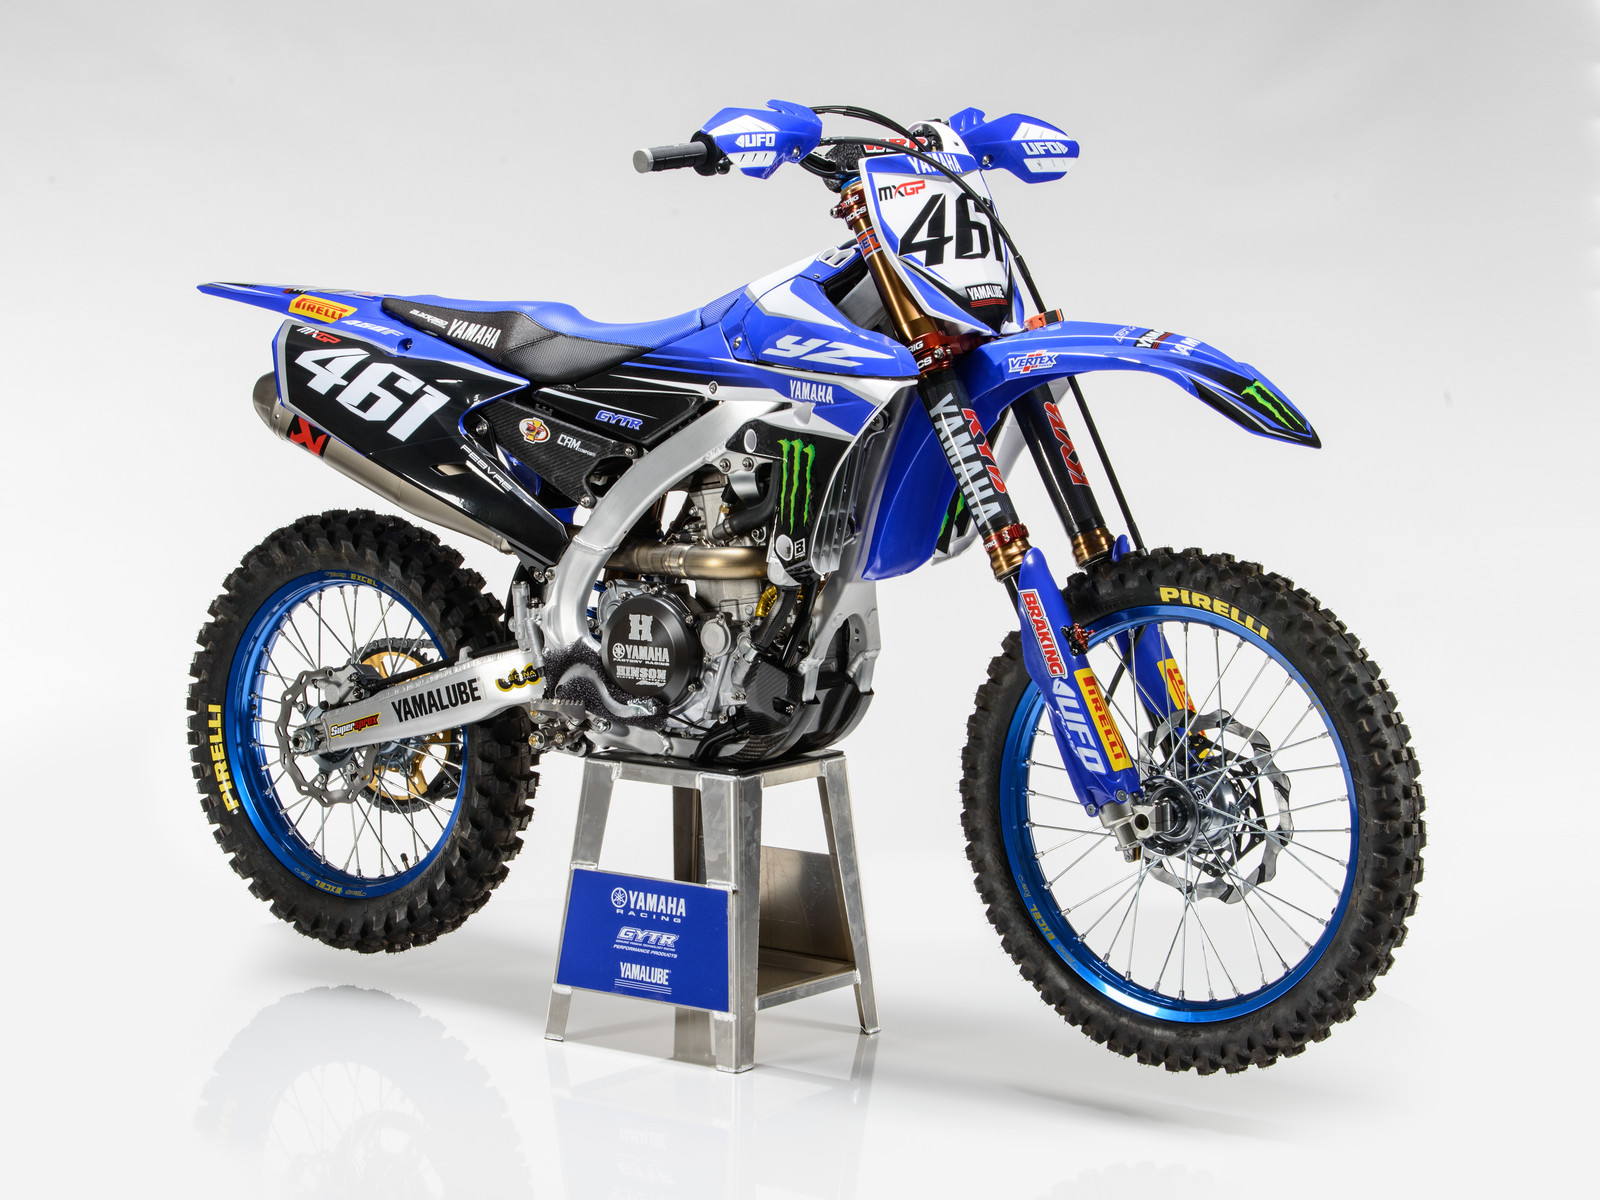 Romain Febvre's 2017 Monster Energy Yamaha Factory YZ450FM - First Look: 2017 Monster Energy & Wilvo Yamaha MXGP Teams - Motocross Pictures - Vital MX